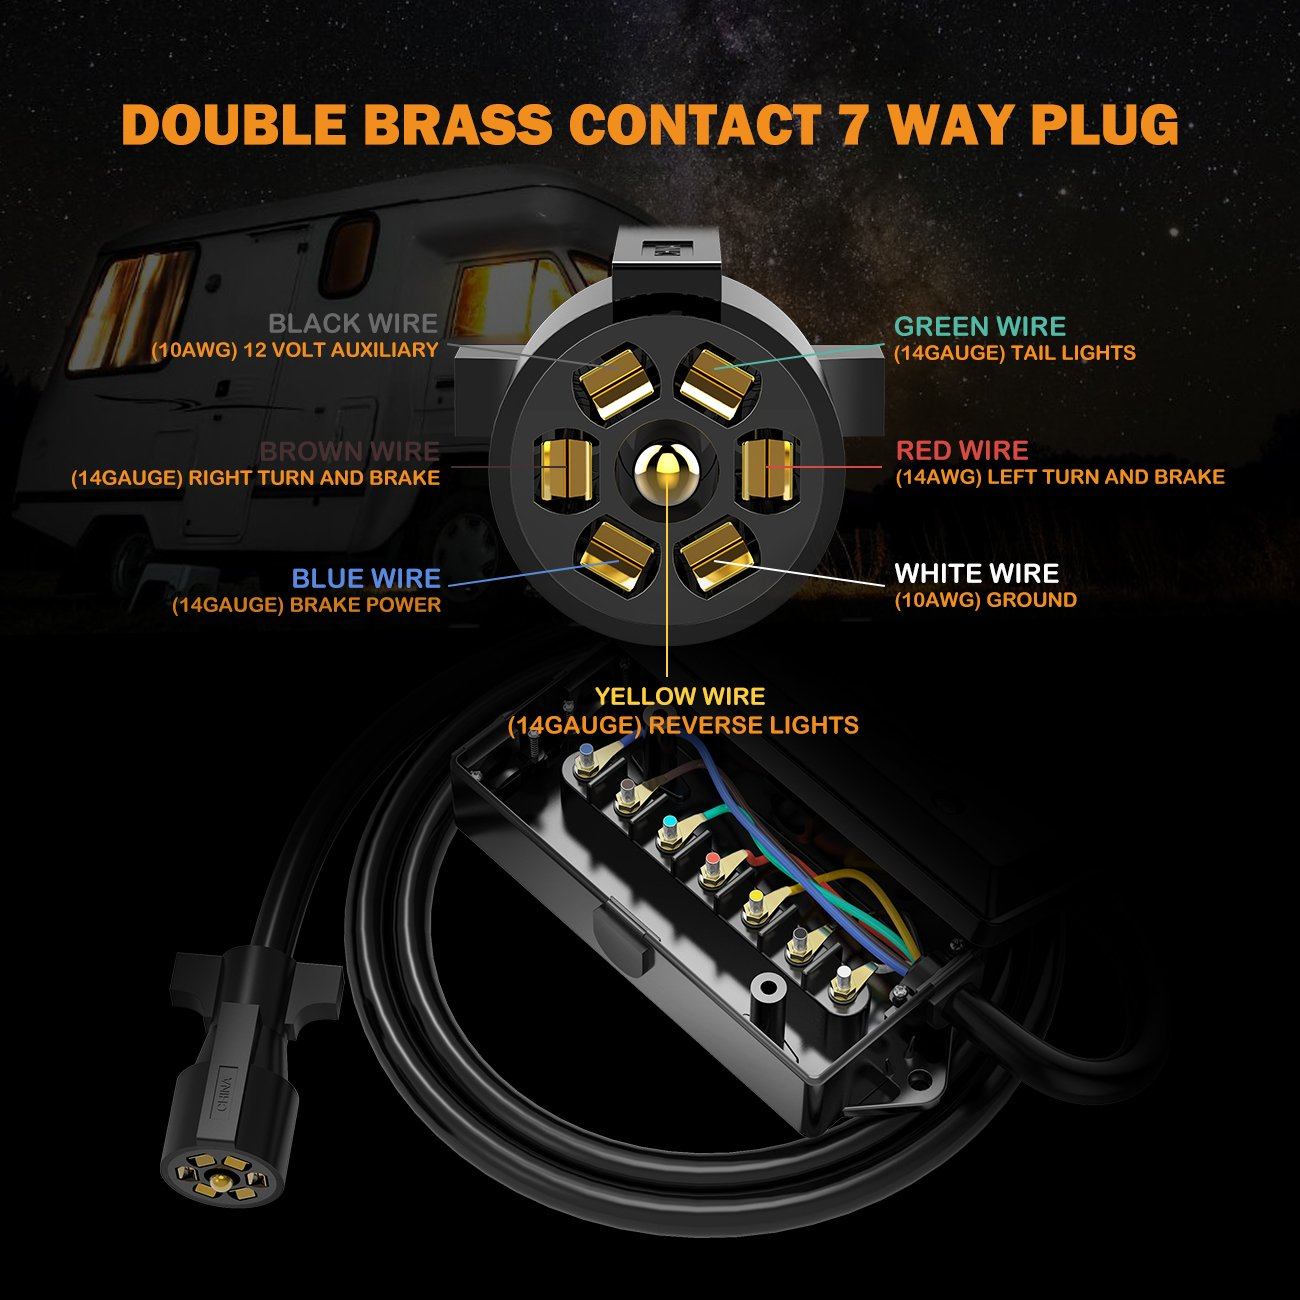 Auxbeam 7 Way Trailer Plug Inline Cord With Wiring A Red White And Black Wires Gang Junction Box For Campers Caravans Food Vans8 Feet Automotive